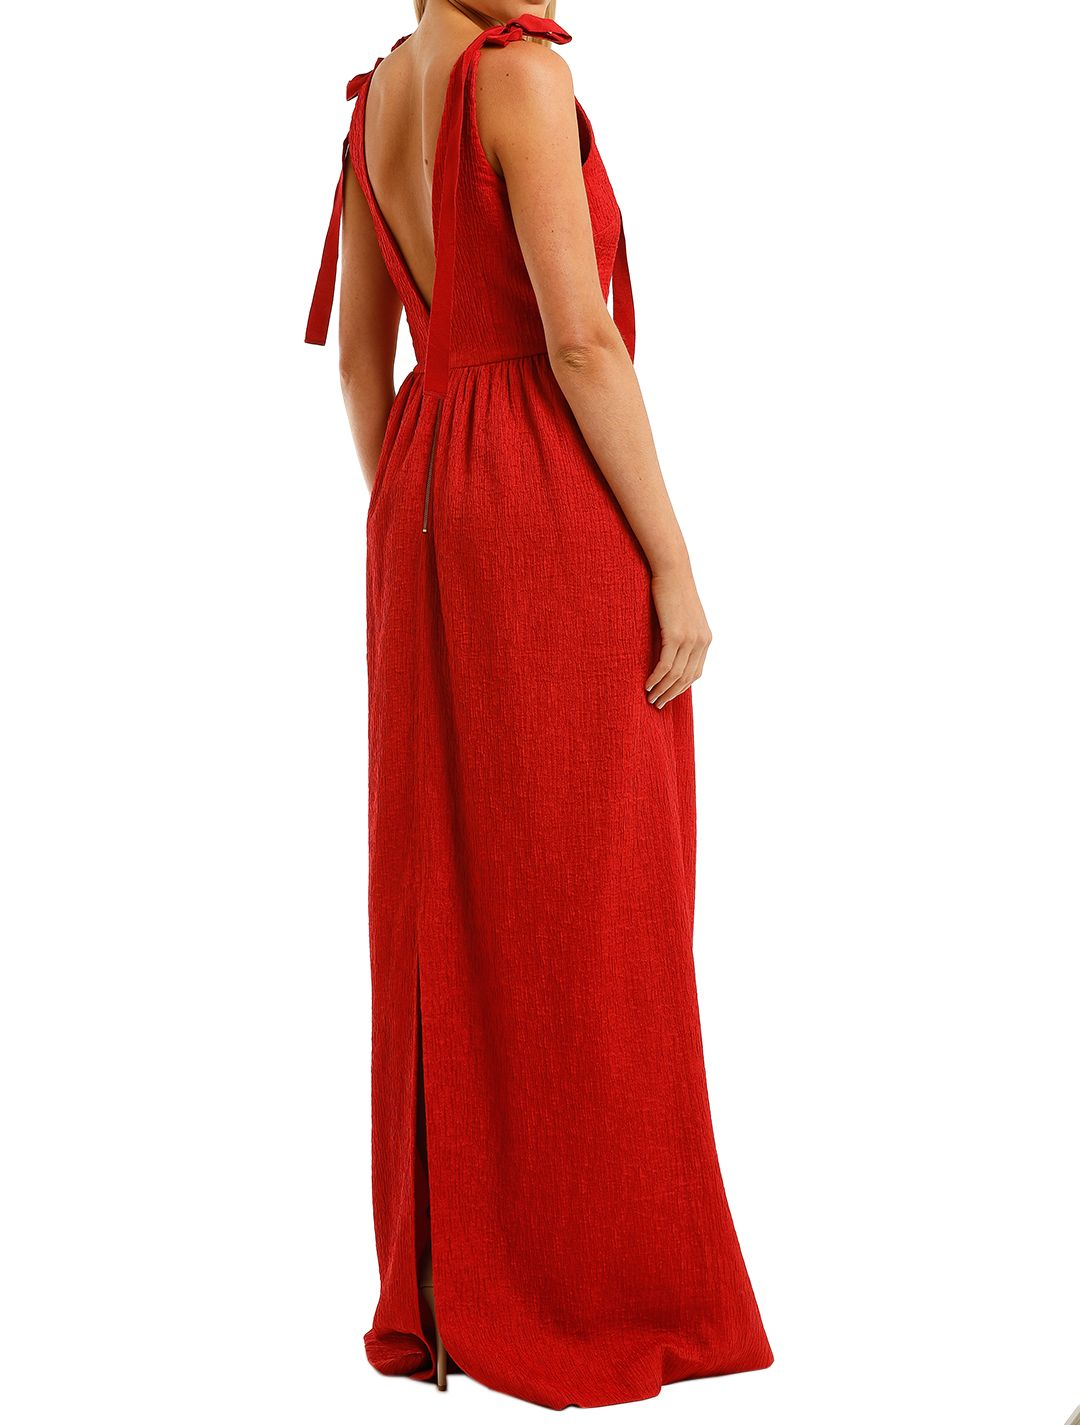 Rebecca-Vallance-Harlow-Tie-Gown-Red-Back